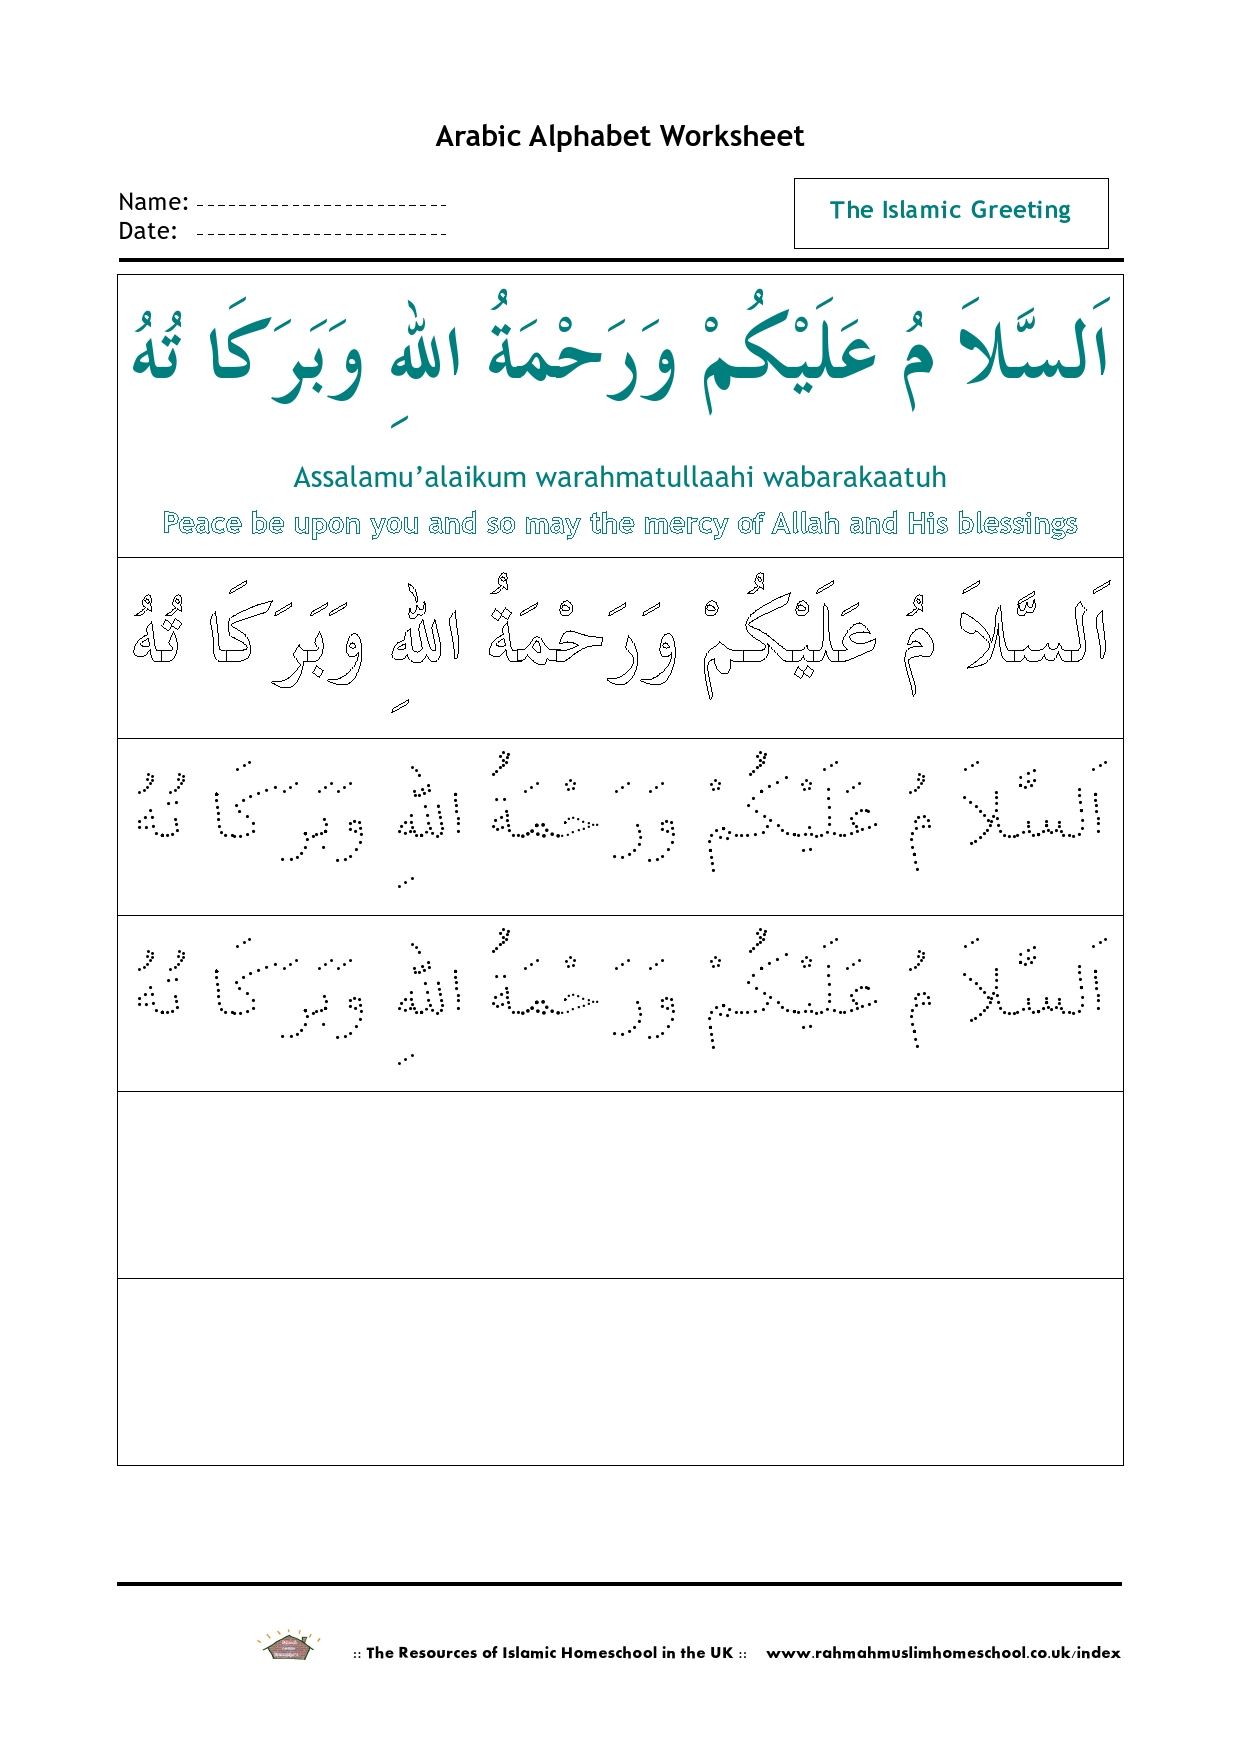 Free Arabic Alphabet Worksheet The Islamic Greeting – Arabic Alphabet Worksheet